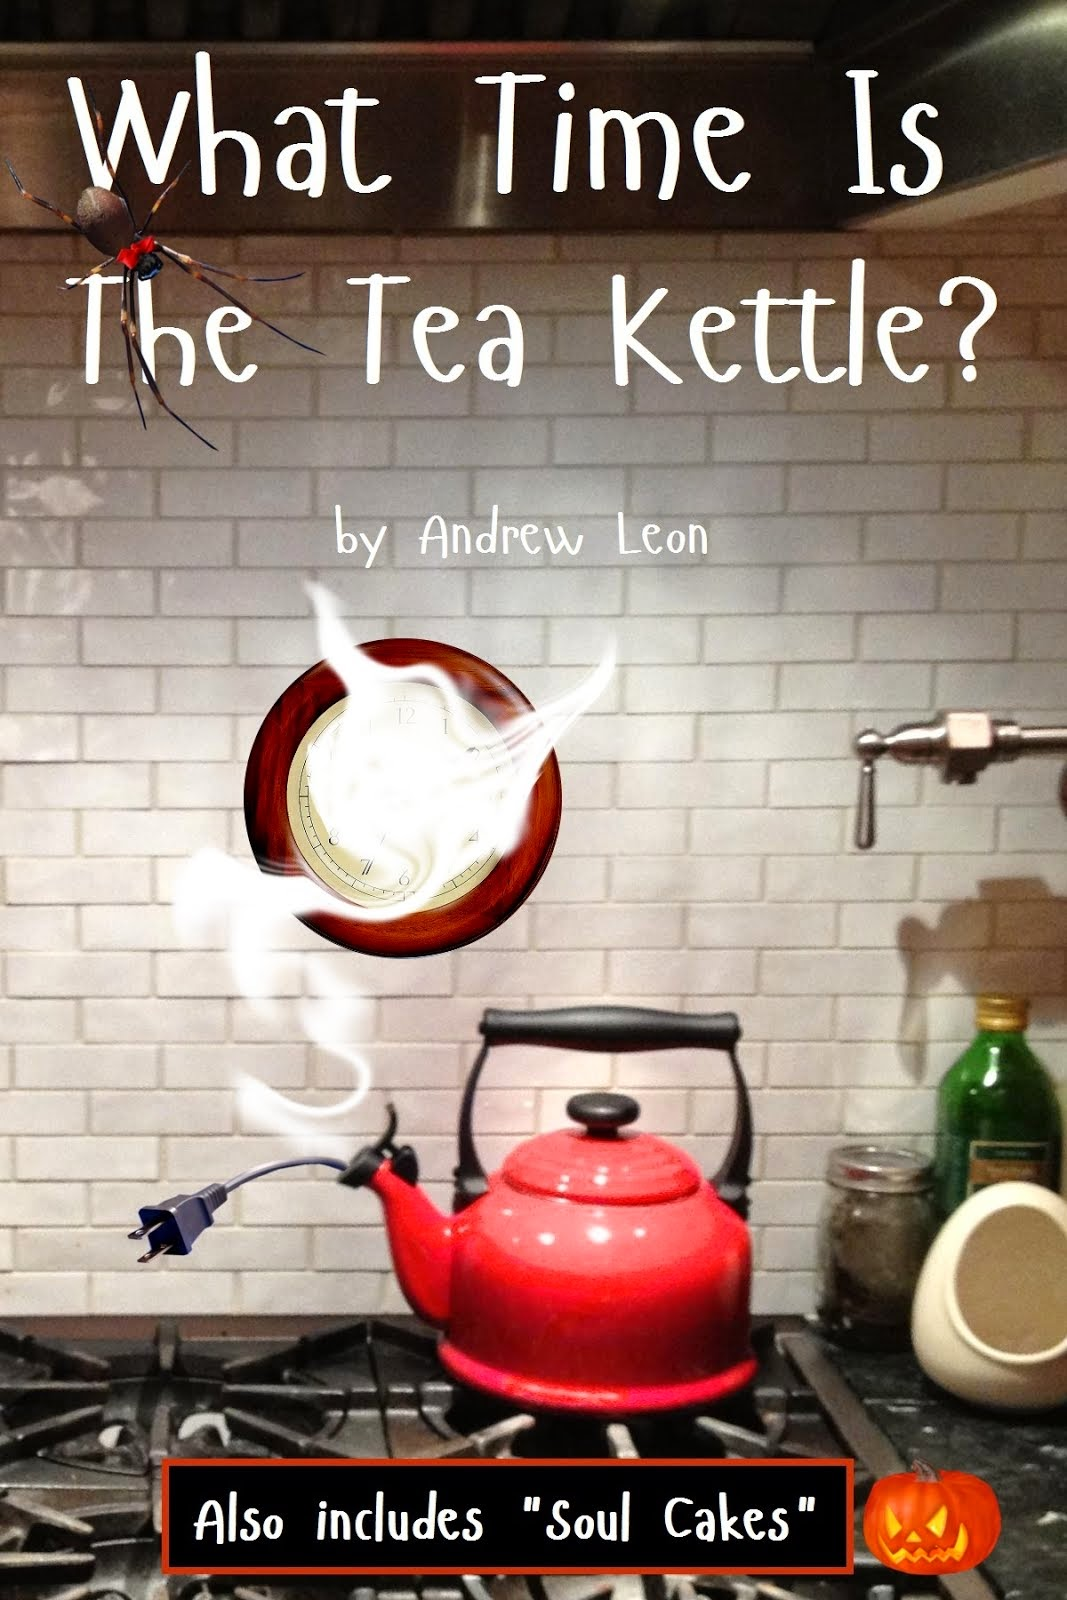 What Time Is the Tea Kettle?